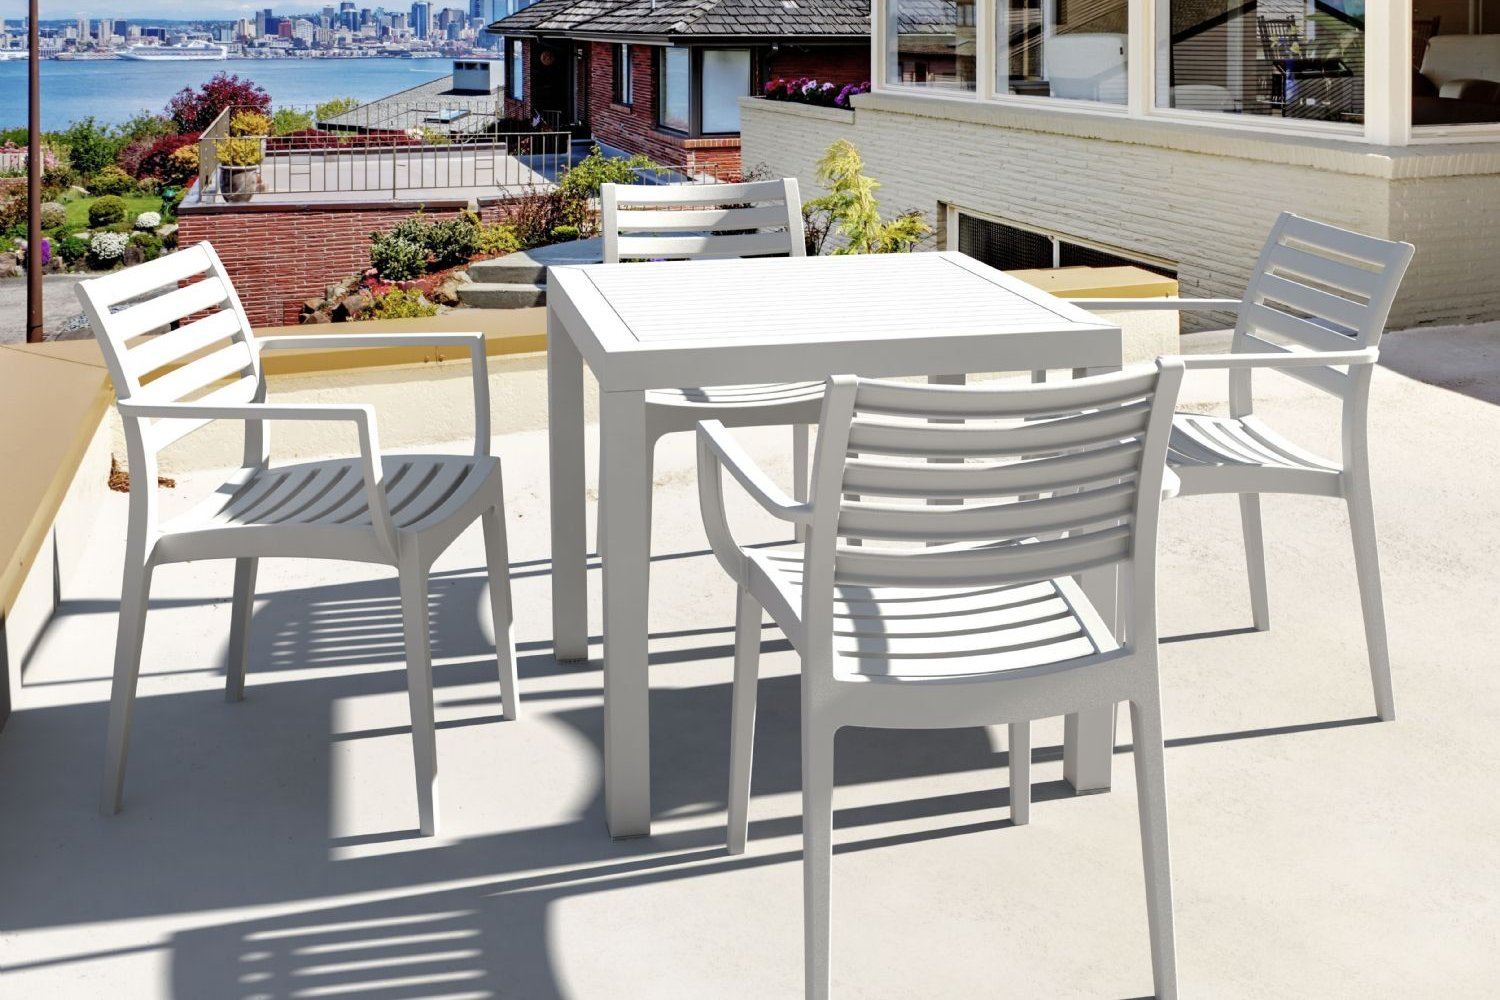 Artemis Resin Square Outdoor Dining Set 5 Piece with Arm Chairs Brown ISP1642S-BRW - 6